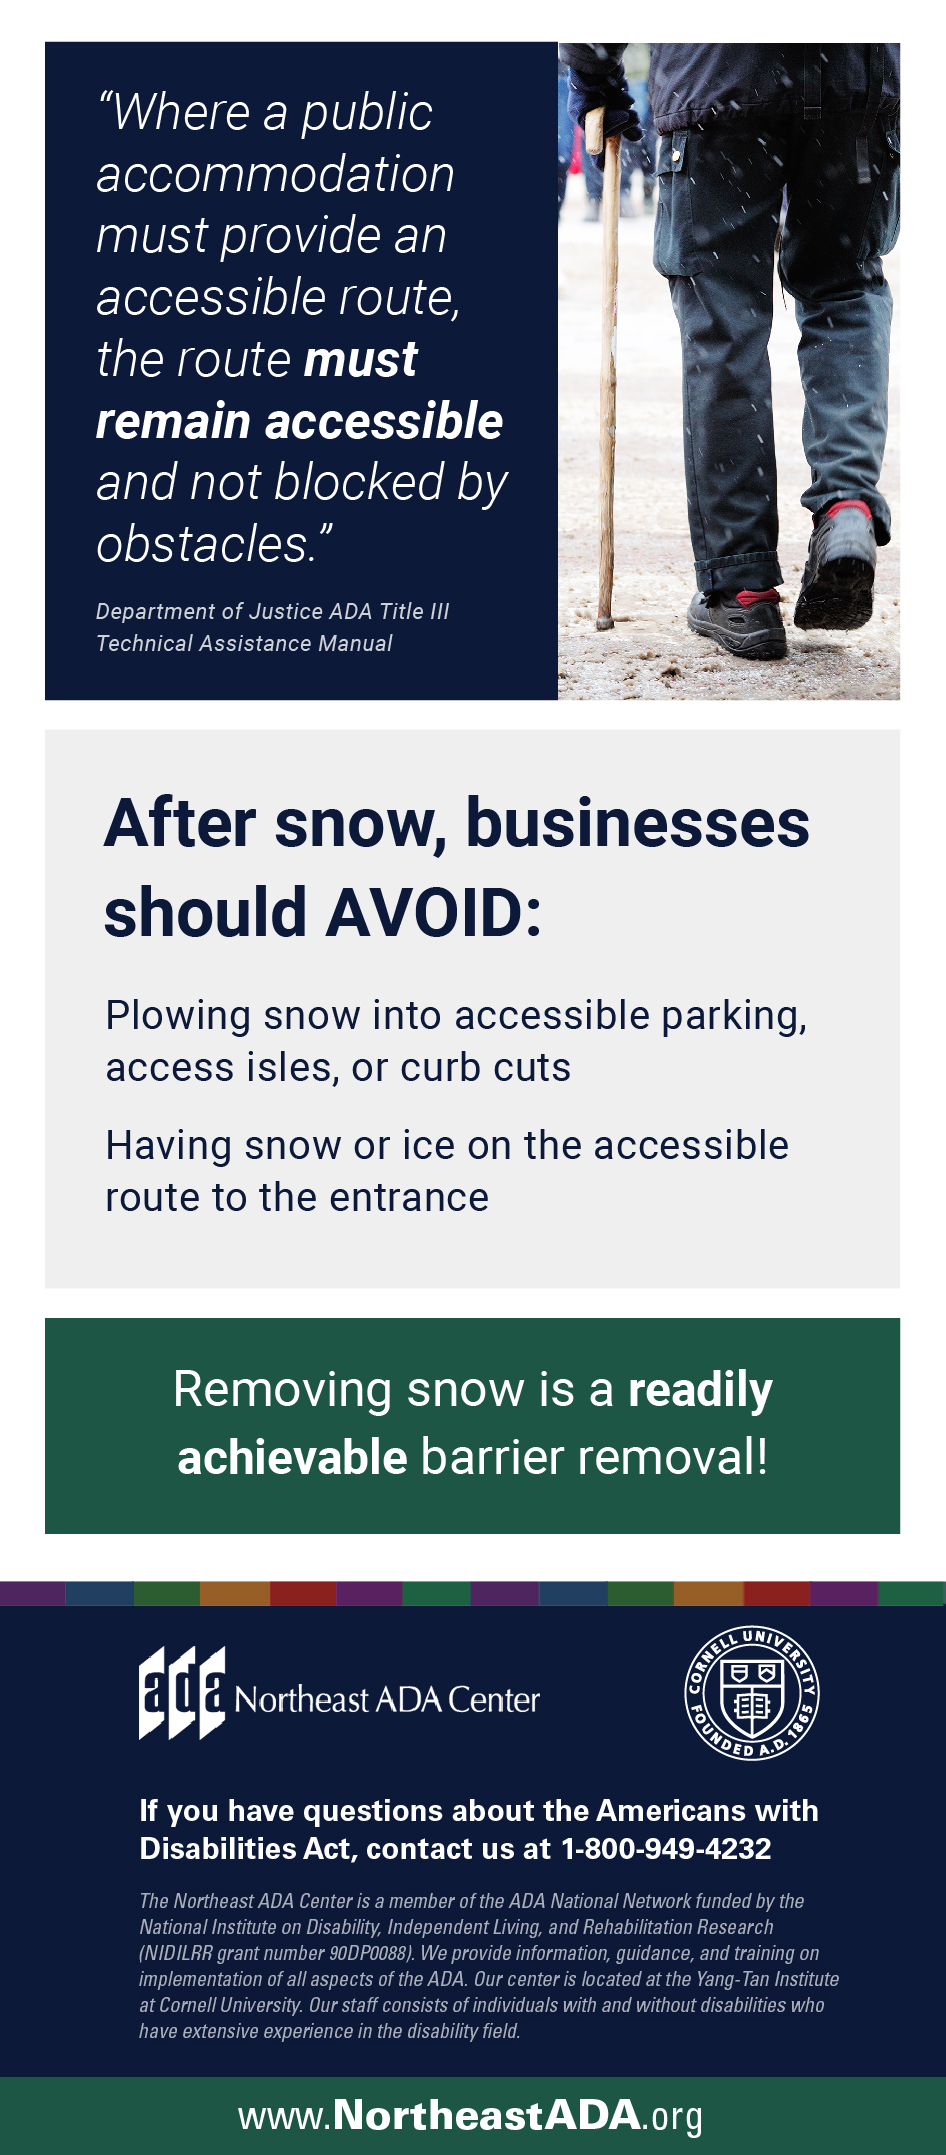 Infographic titled 'Snow Removal for Business Owners' featuring a man walking through the snow with a cane.  'Where a public accommodation must provide an accessible route, the route must remain accessible and not blocked by obstacles' - Department of Justice ADA Title III Technical Assistance Manual  After snow, businesses should AVOID: Plowing snow into accessible parking, access isles, or curb cuts. Having snow or ice on the accessible route to the entrance.  Removing snow is a readily achievable barrier removal  If you have questions about the Americans with Disabilities Act, contact the Northeast ADA Center at 1-800-949-4232